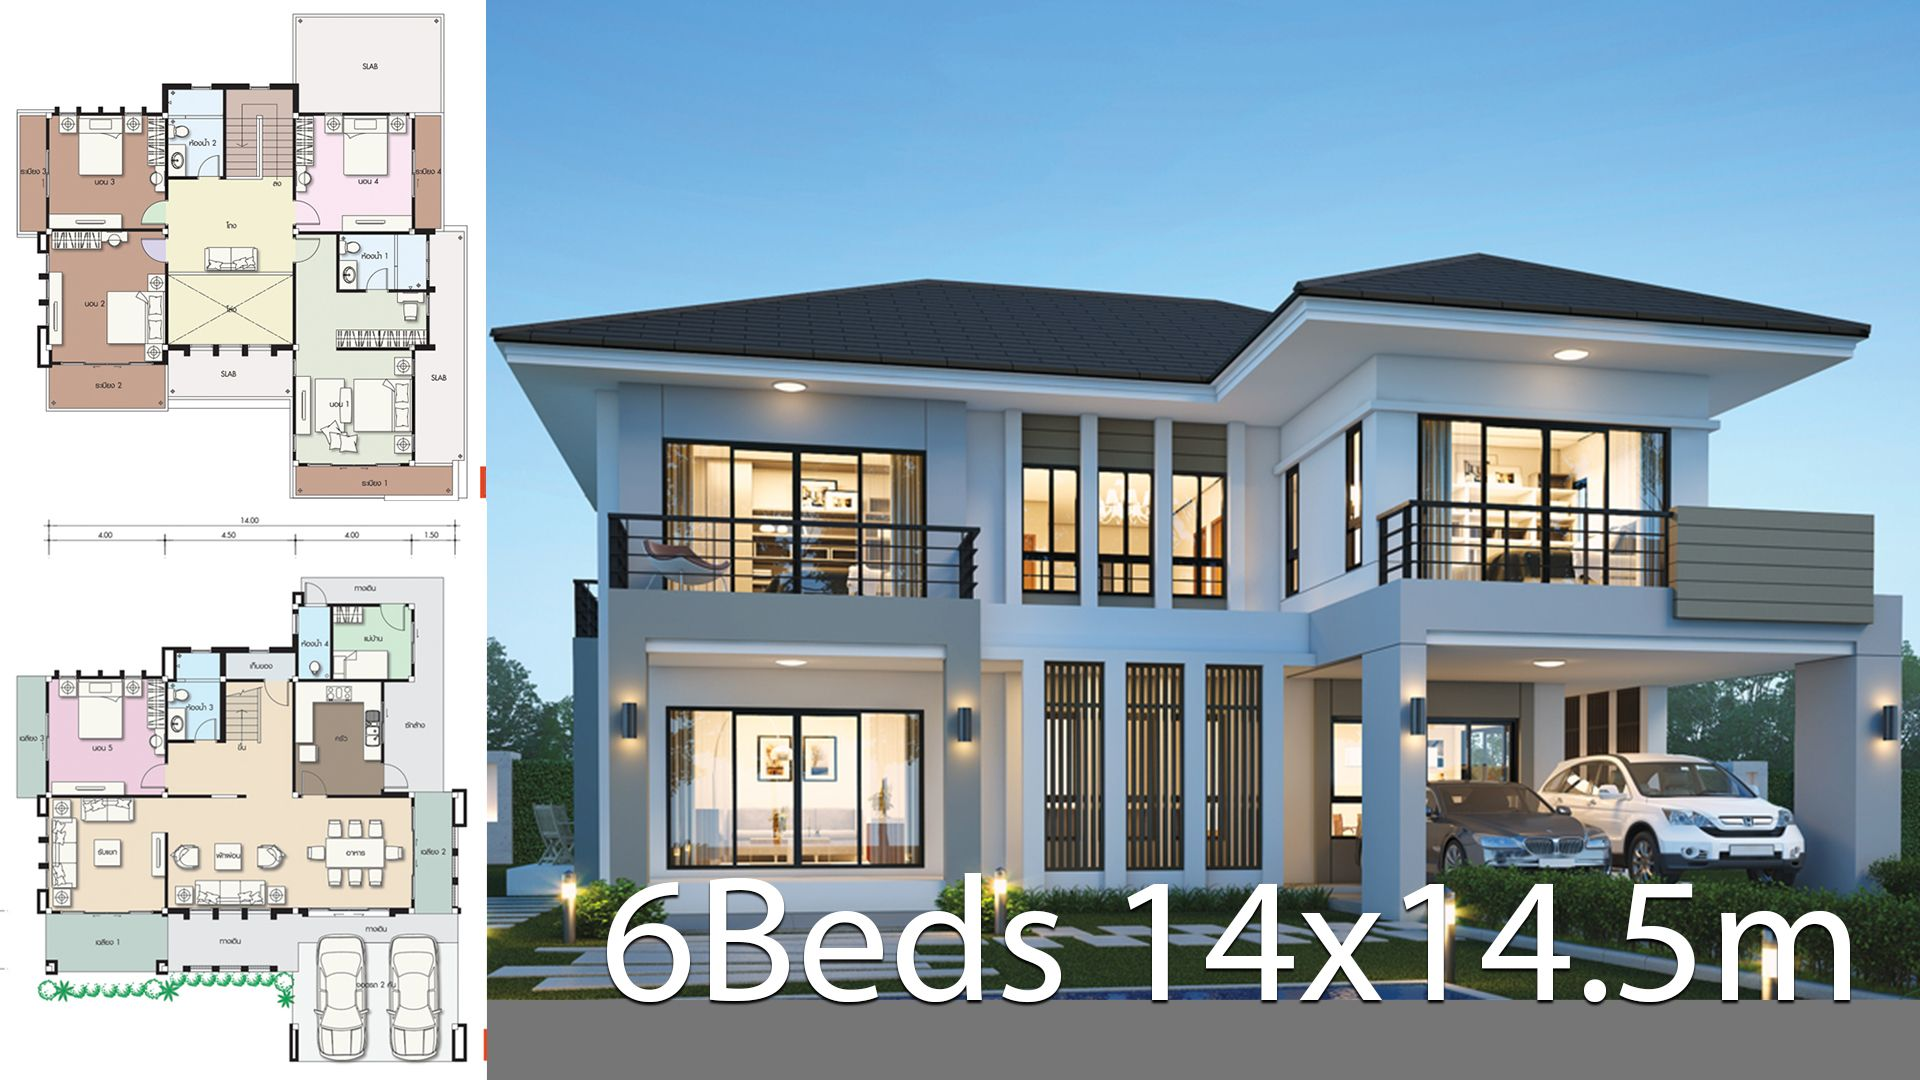 House Design Plan 14x14 5m With 6 Bedrooms Style Modern Tropicalhouse Description Number Of Floors Bungalow House Design Home Design Plans House Layout Plans